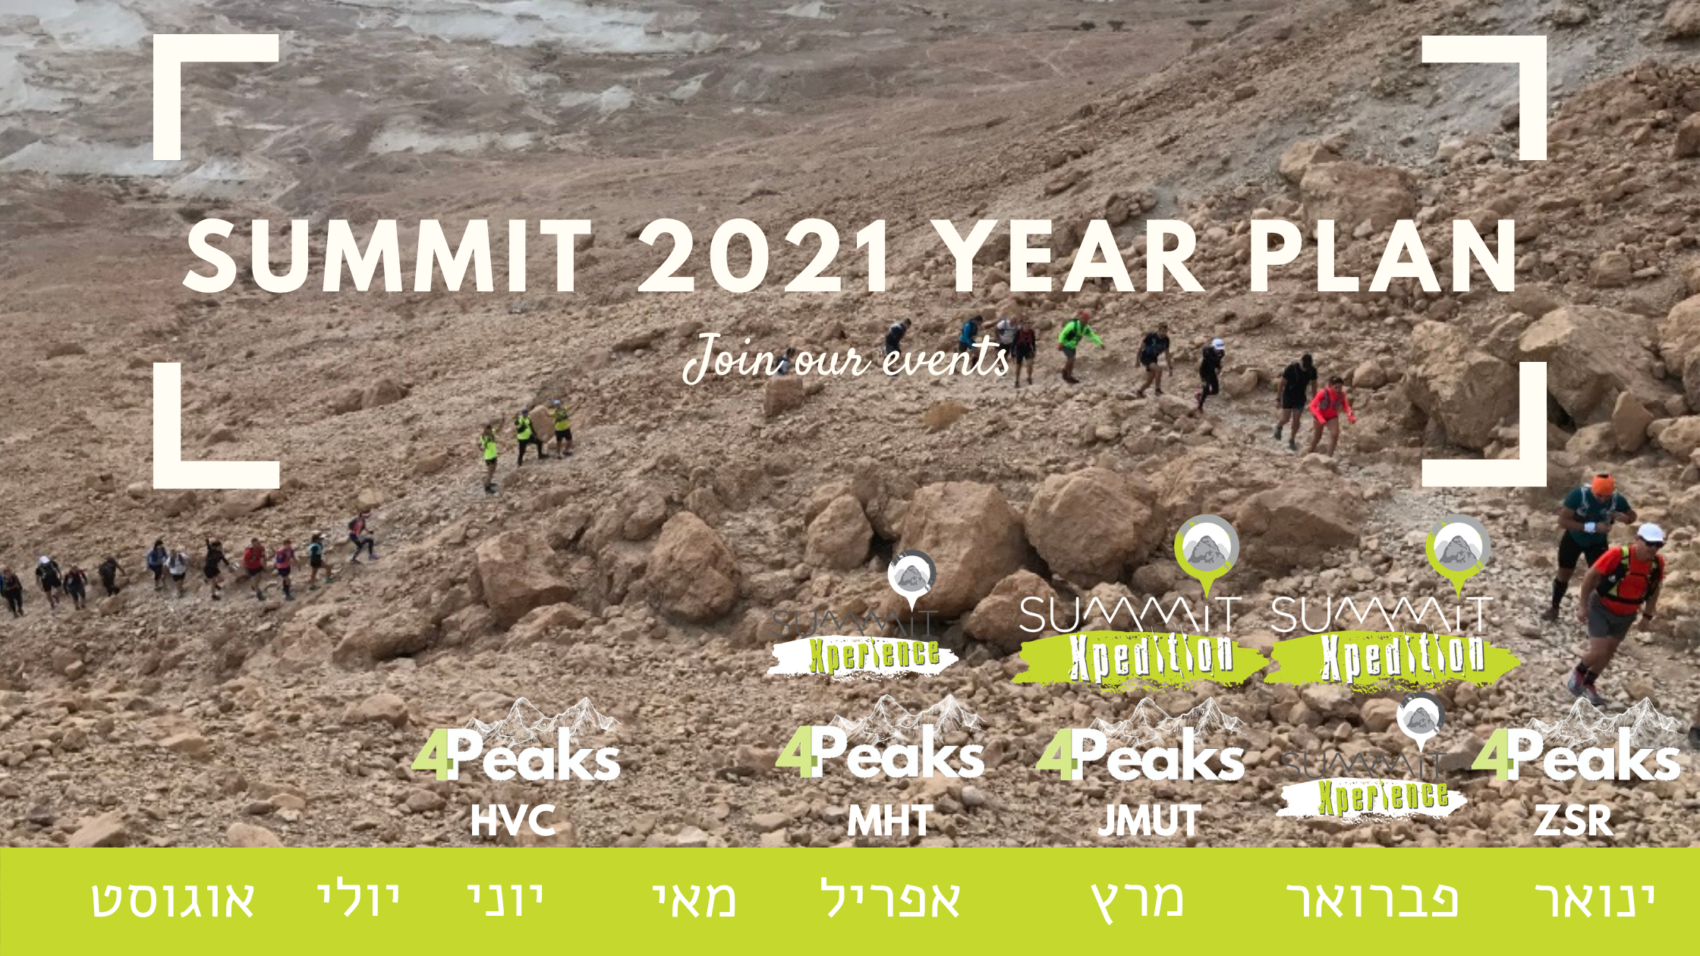 Summit 2021 year plan